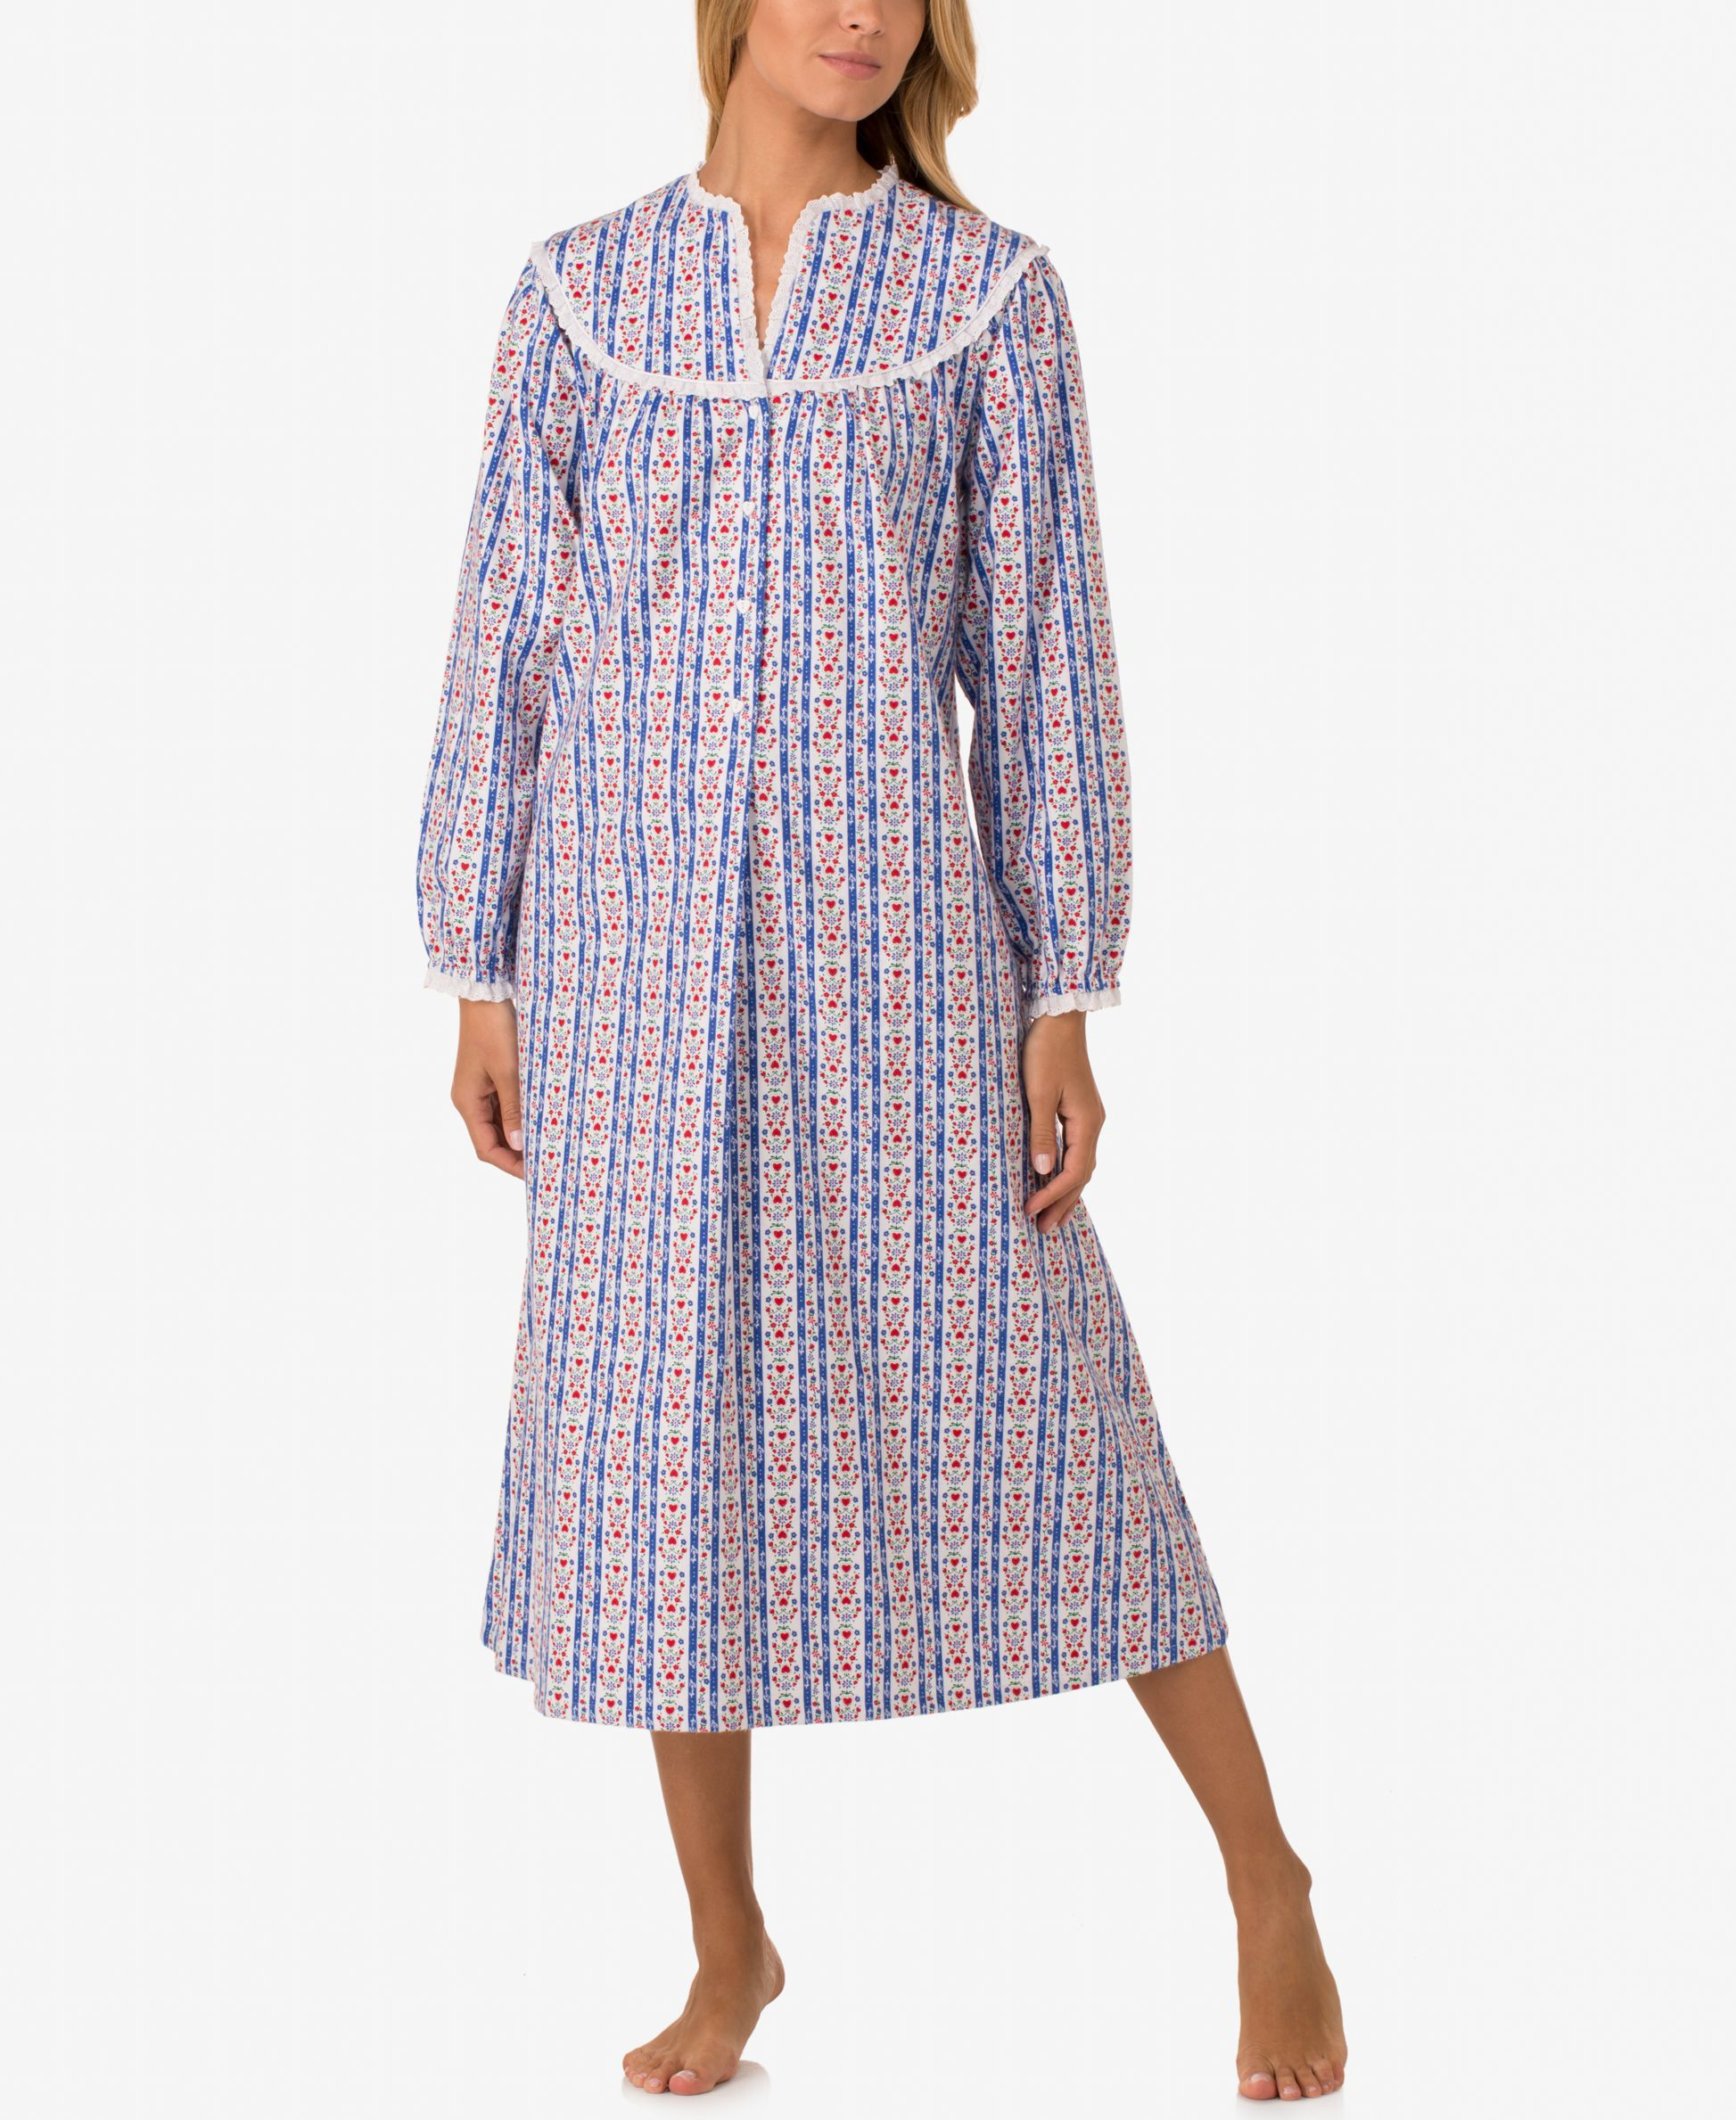 343c6a8f01 Lanz of Salzburg V-Neck Flannel Nightgown